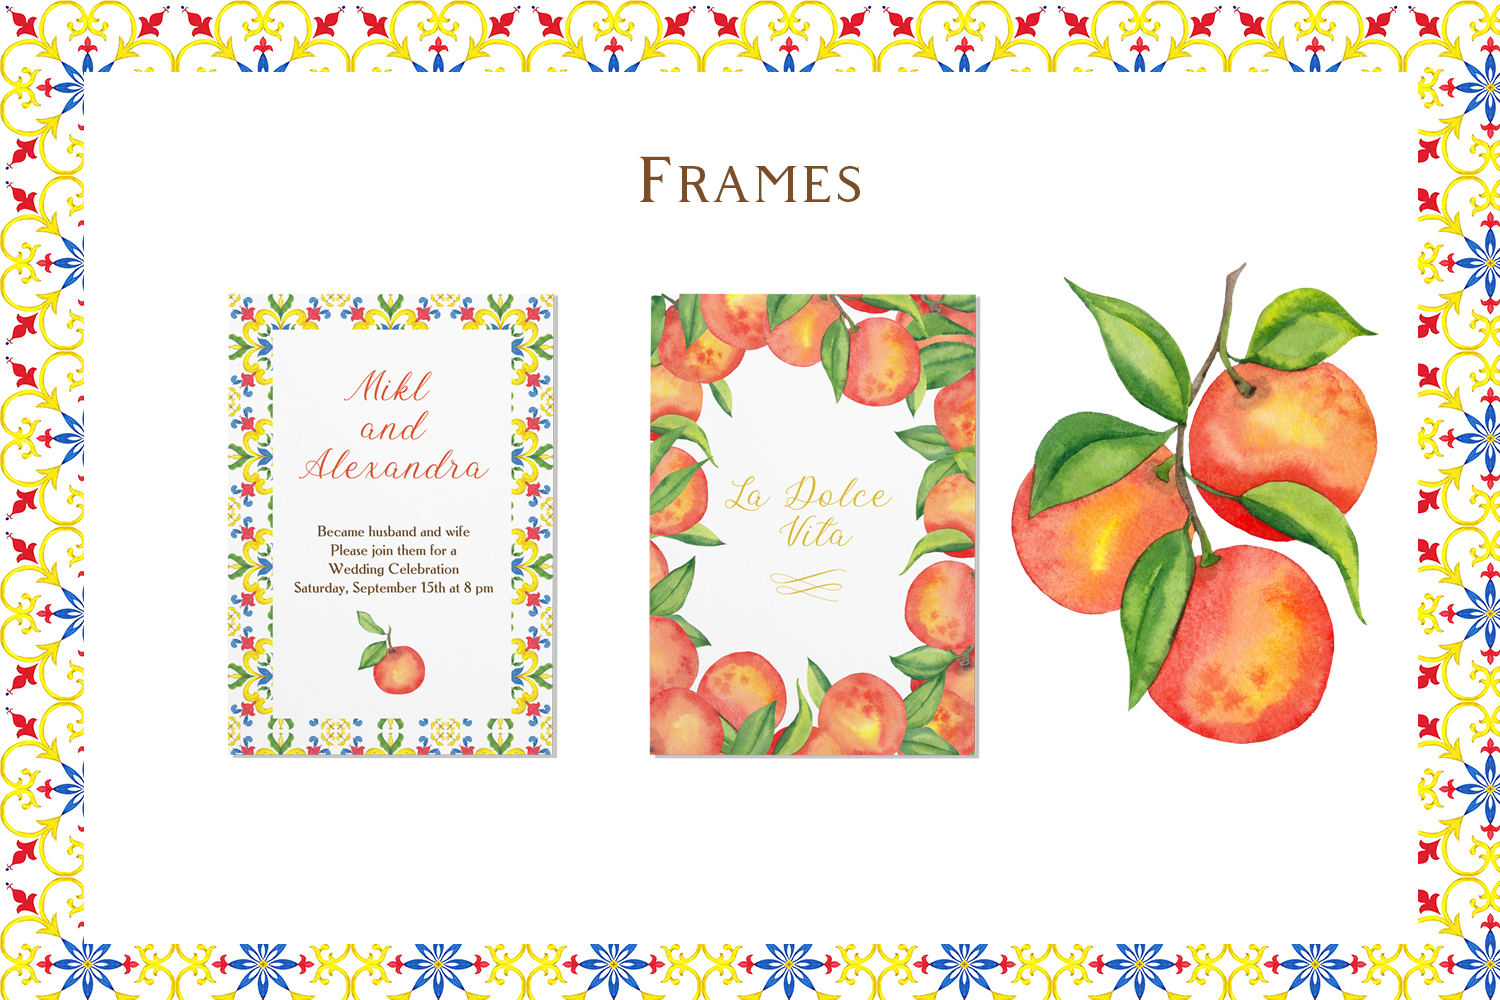 Sicily. Ornament and fruits example image 3